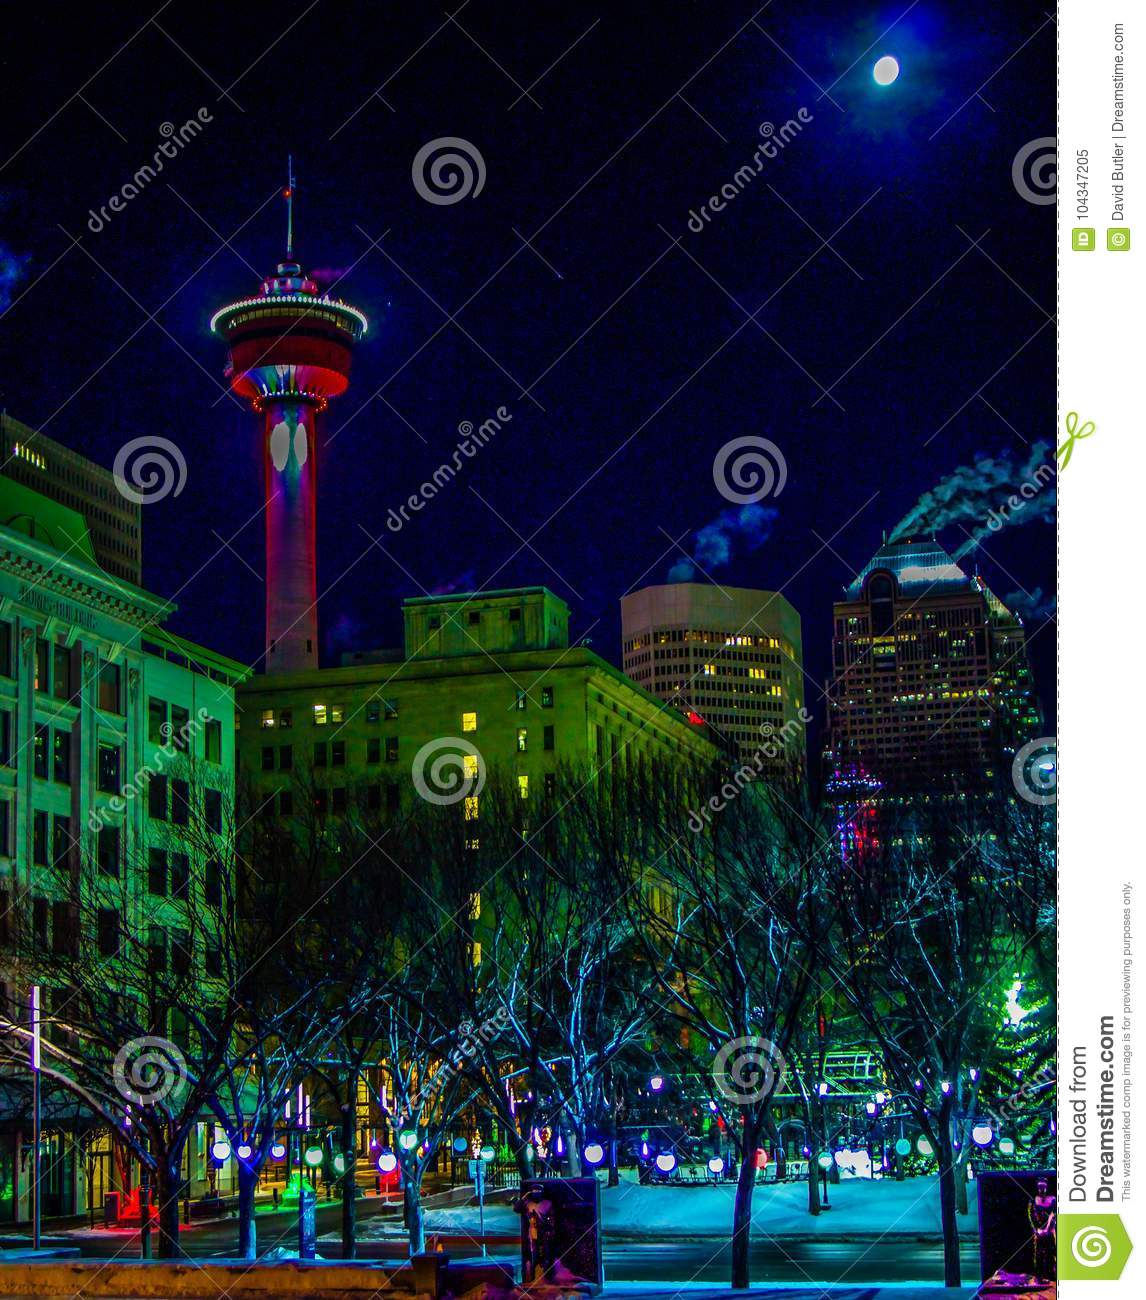 Christmas In Calgary Canada.Downtown Calgary In Christmas Lights Stock Image Image Of